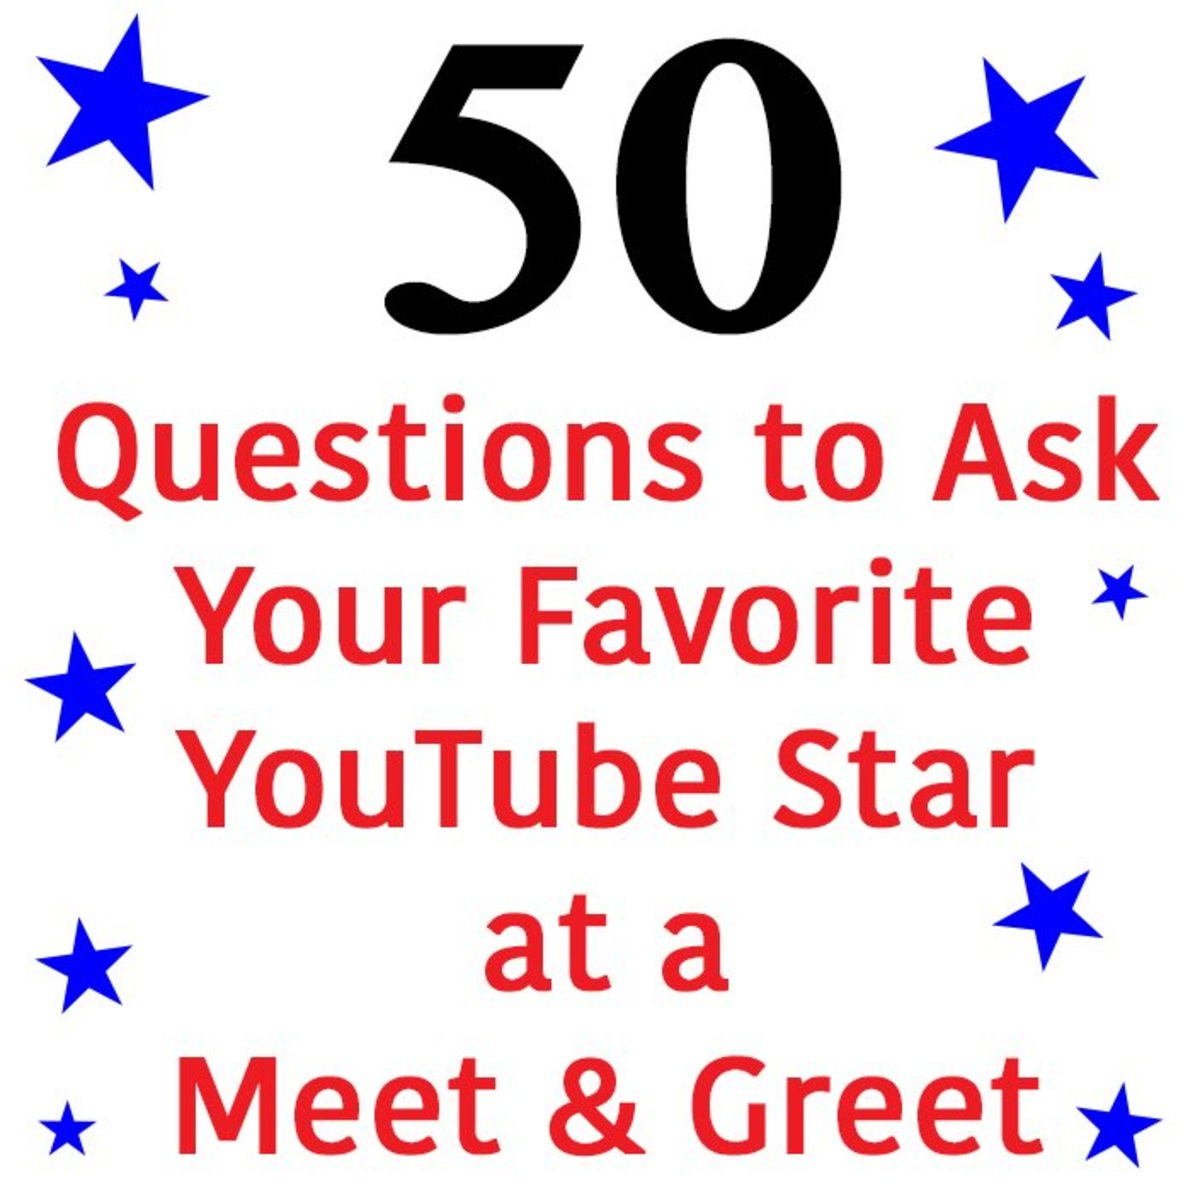 If you have the opportunity to meet your favorite YouTuber, make sure you plan ahead what you want to ask them!